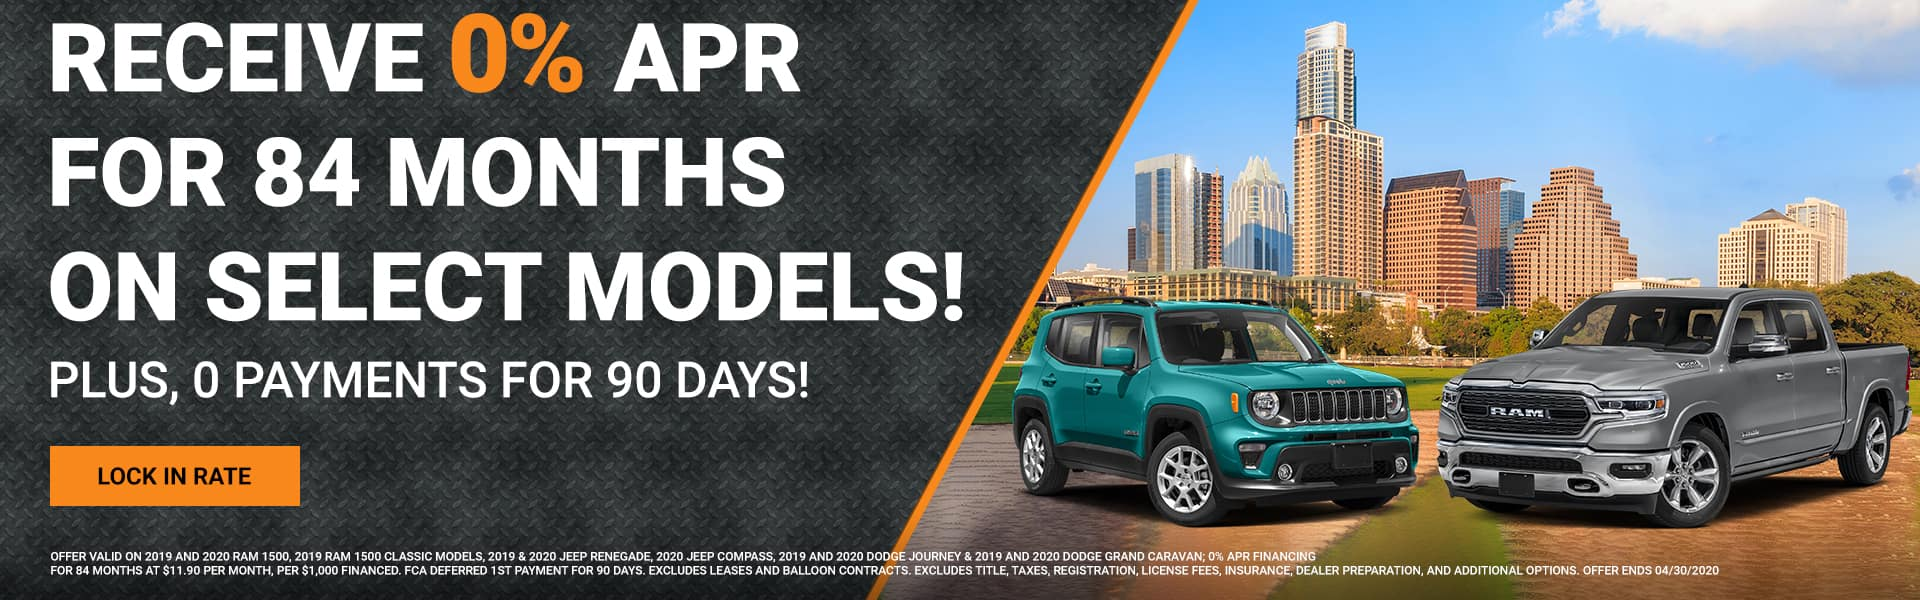 0%APR for 84 Months on Select Models